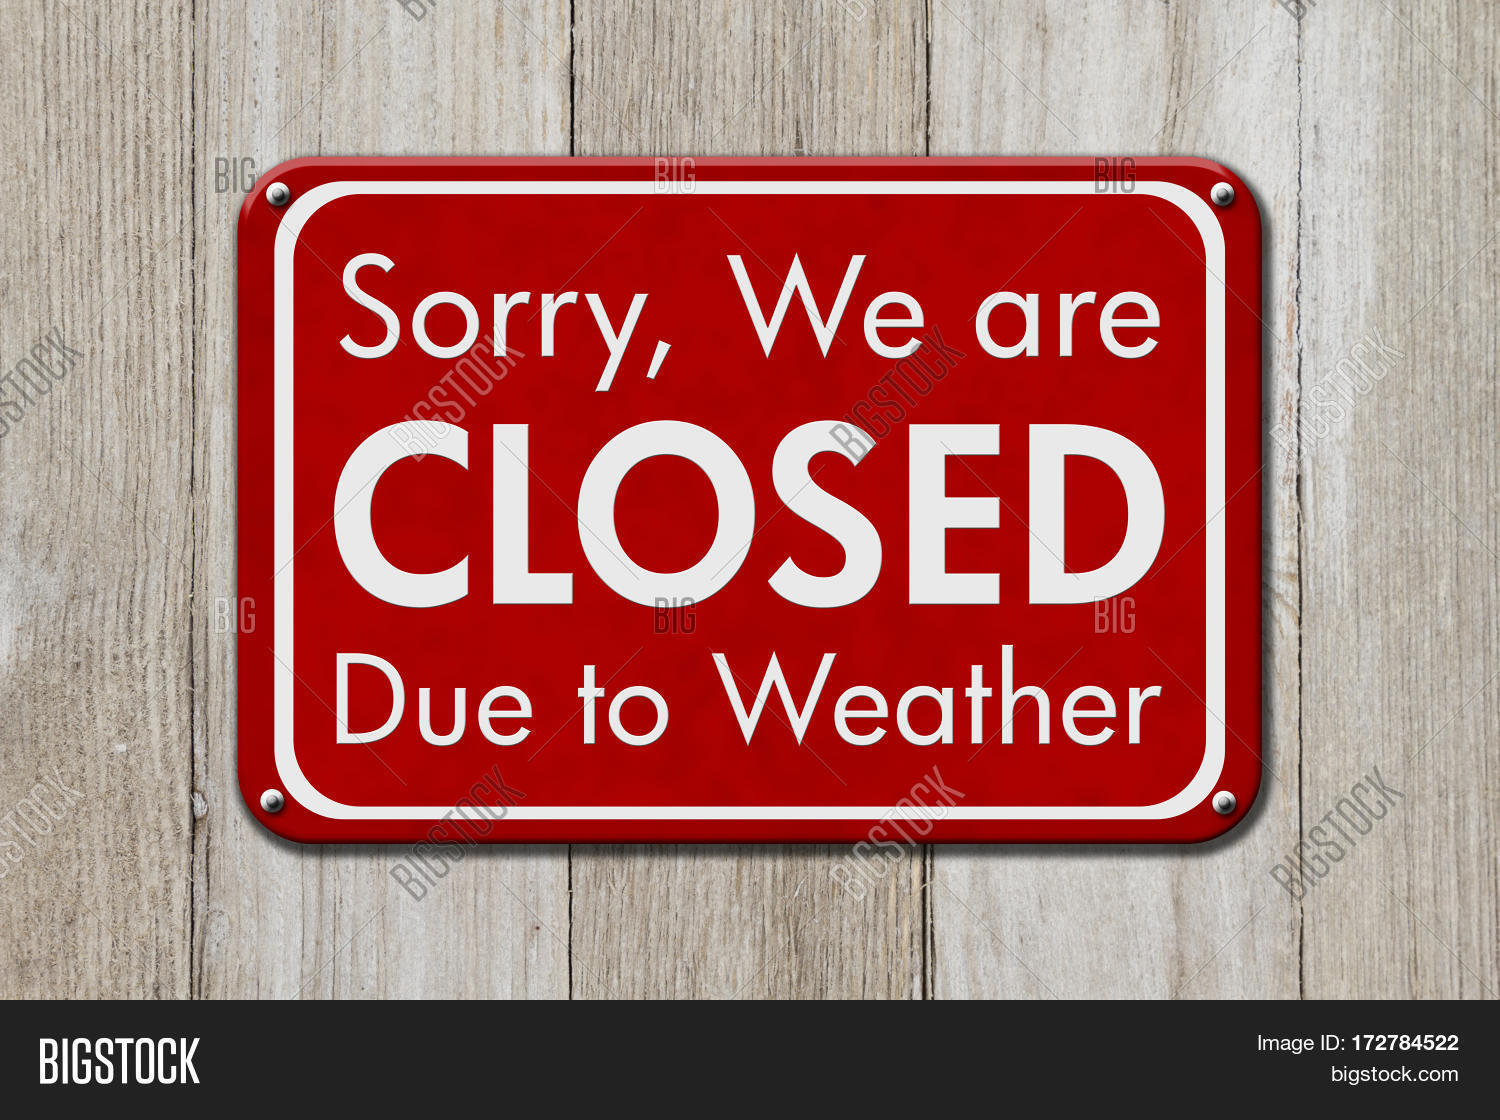 Closed Due Weather Sign Red Sign Image & Photo   Bigstock